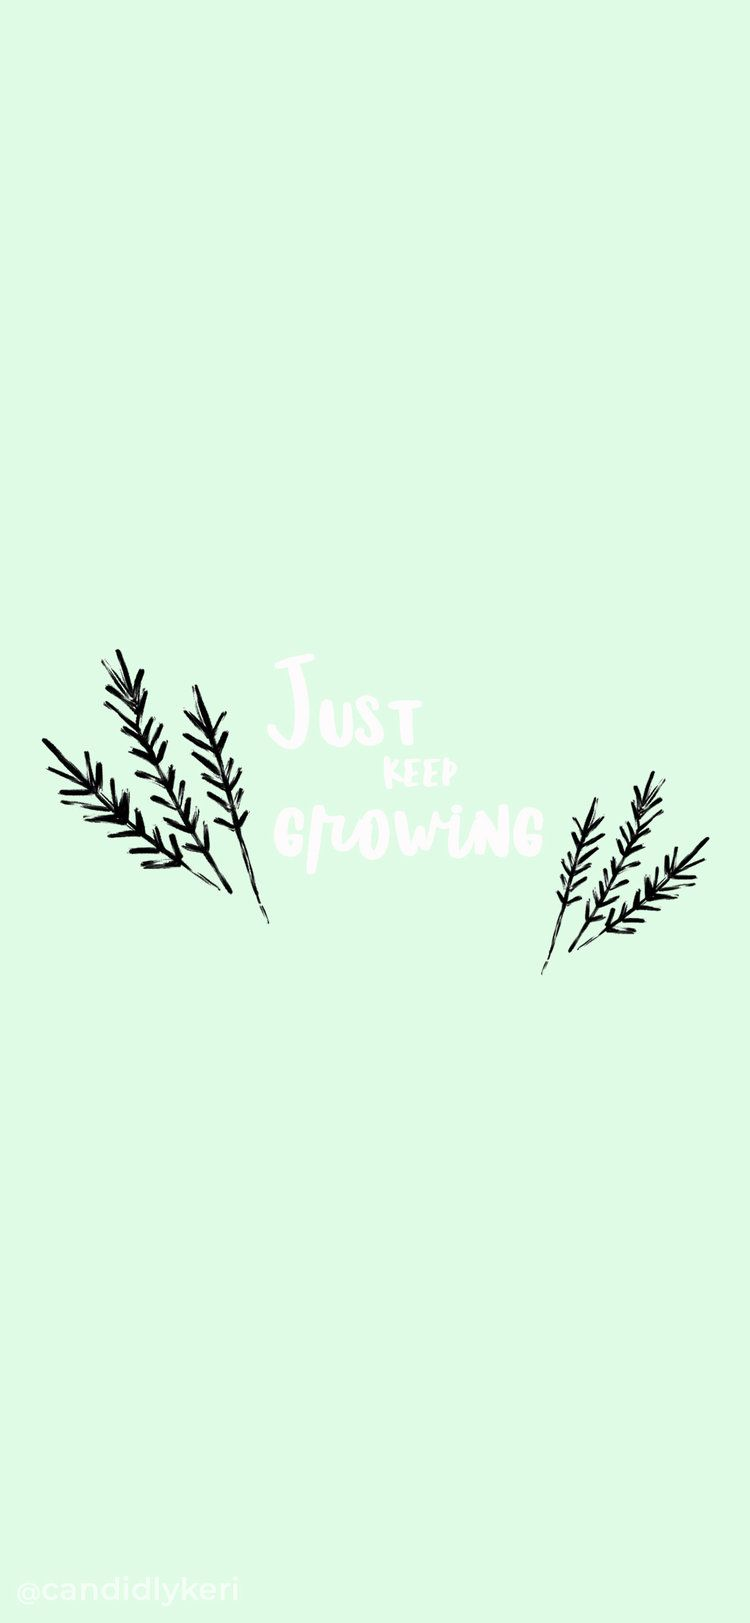 Just Keep Growing greenery quote inspirational background